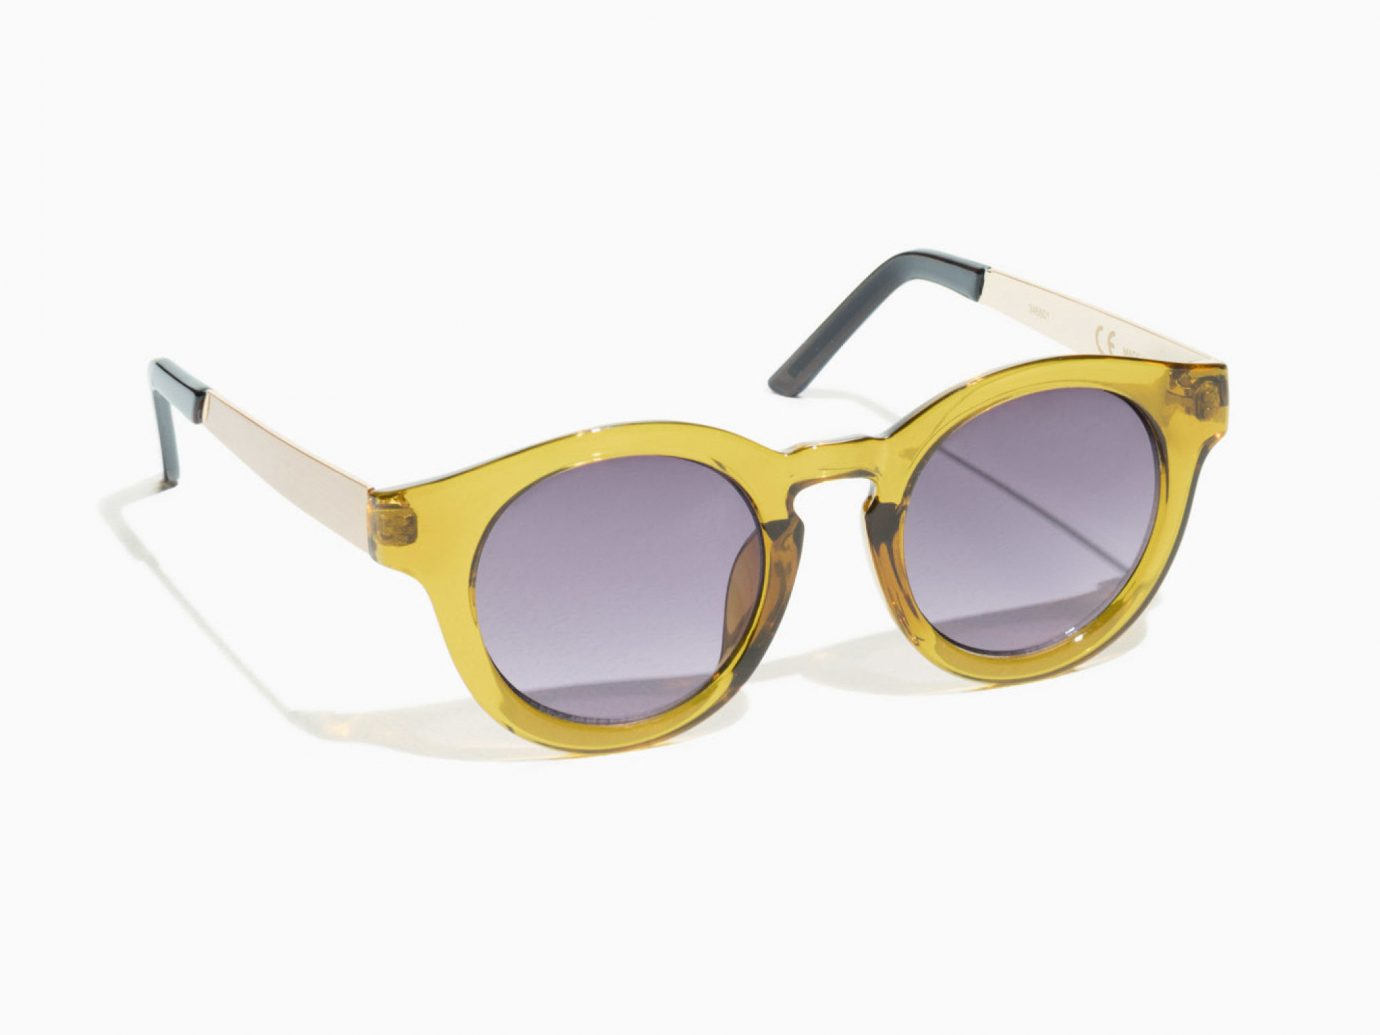 Spring Travel Style + Design Summer Travel Travel Shop spectacles sunglasses eyewear accessory yellow goggles vision care glasses product product design personal protective equipment beige font